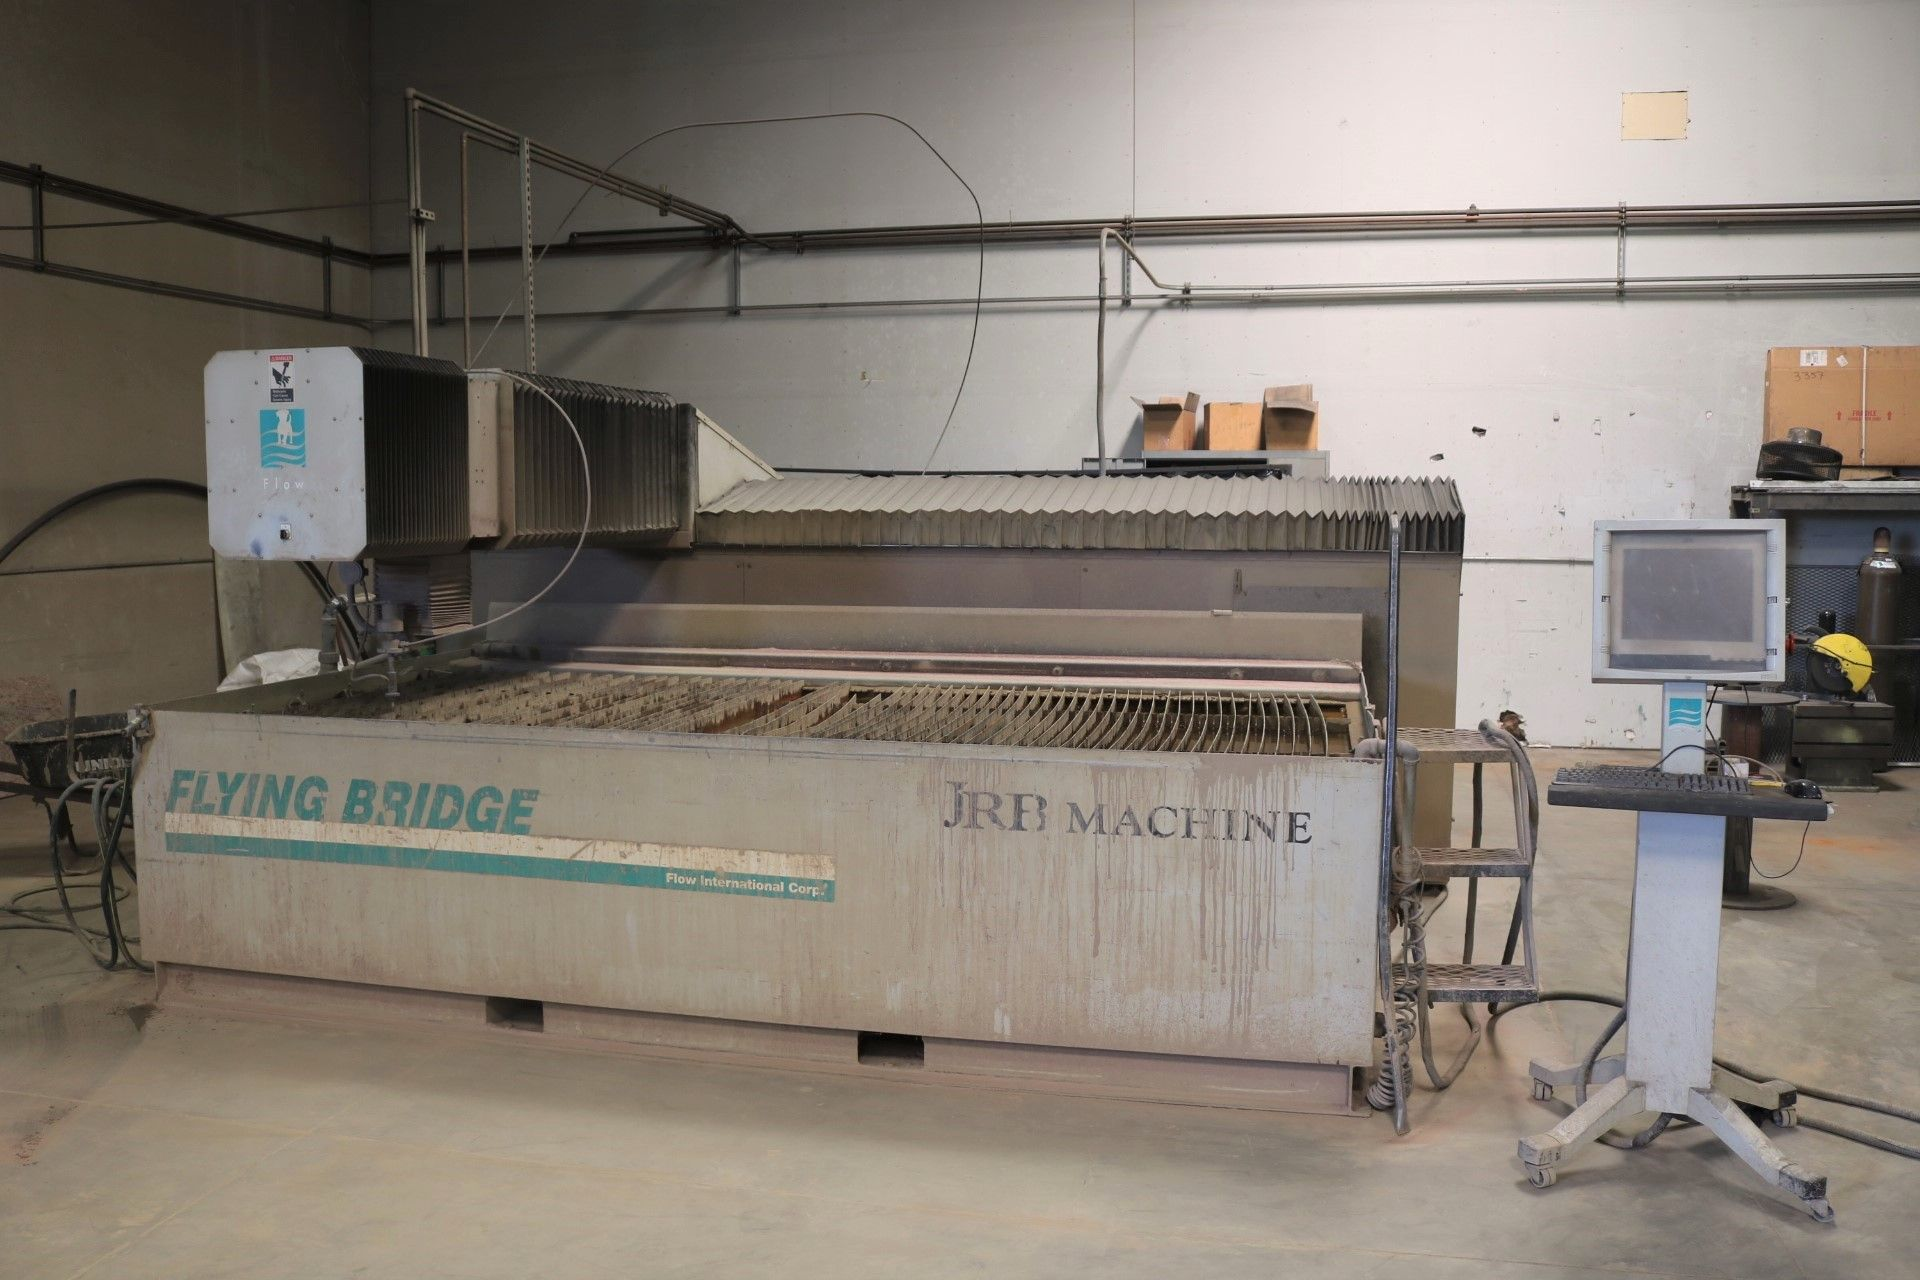 Lot 2 - 2000 FLOW FLYING BRIDGE CNC ABRASIVE WATERJET, 60,000 PSI ELS PUMP, M320 VERSION 4 PC CONTROL